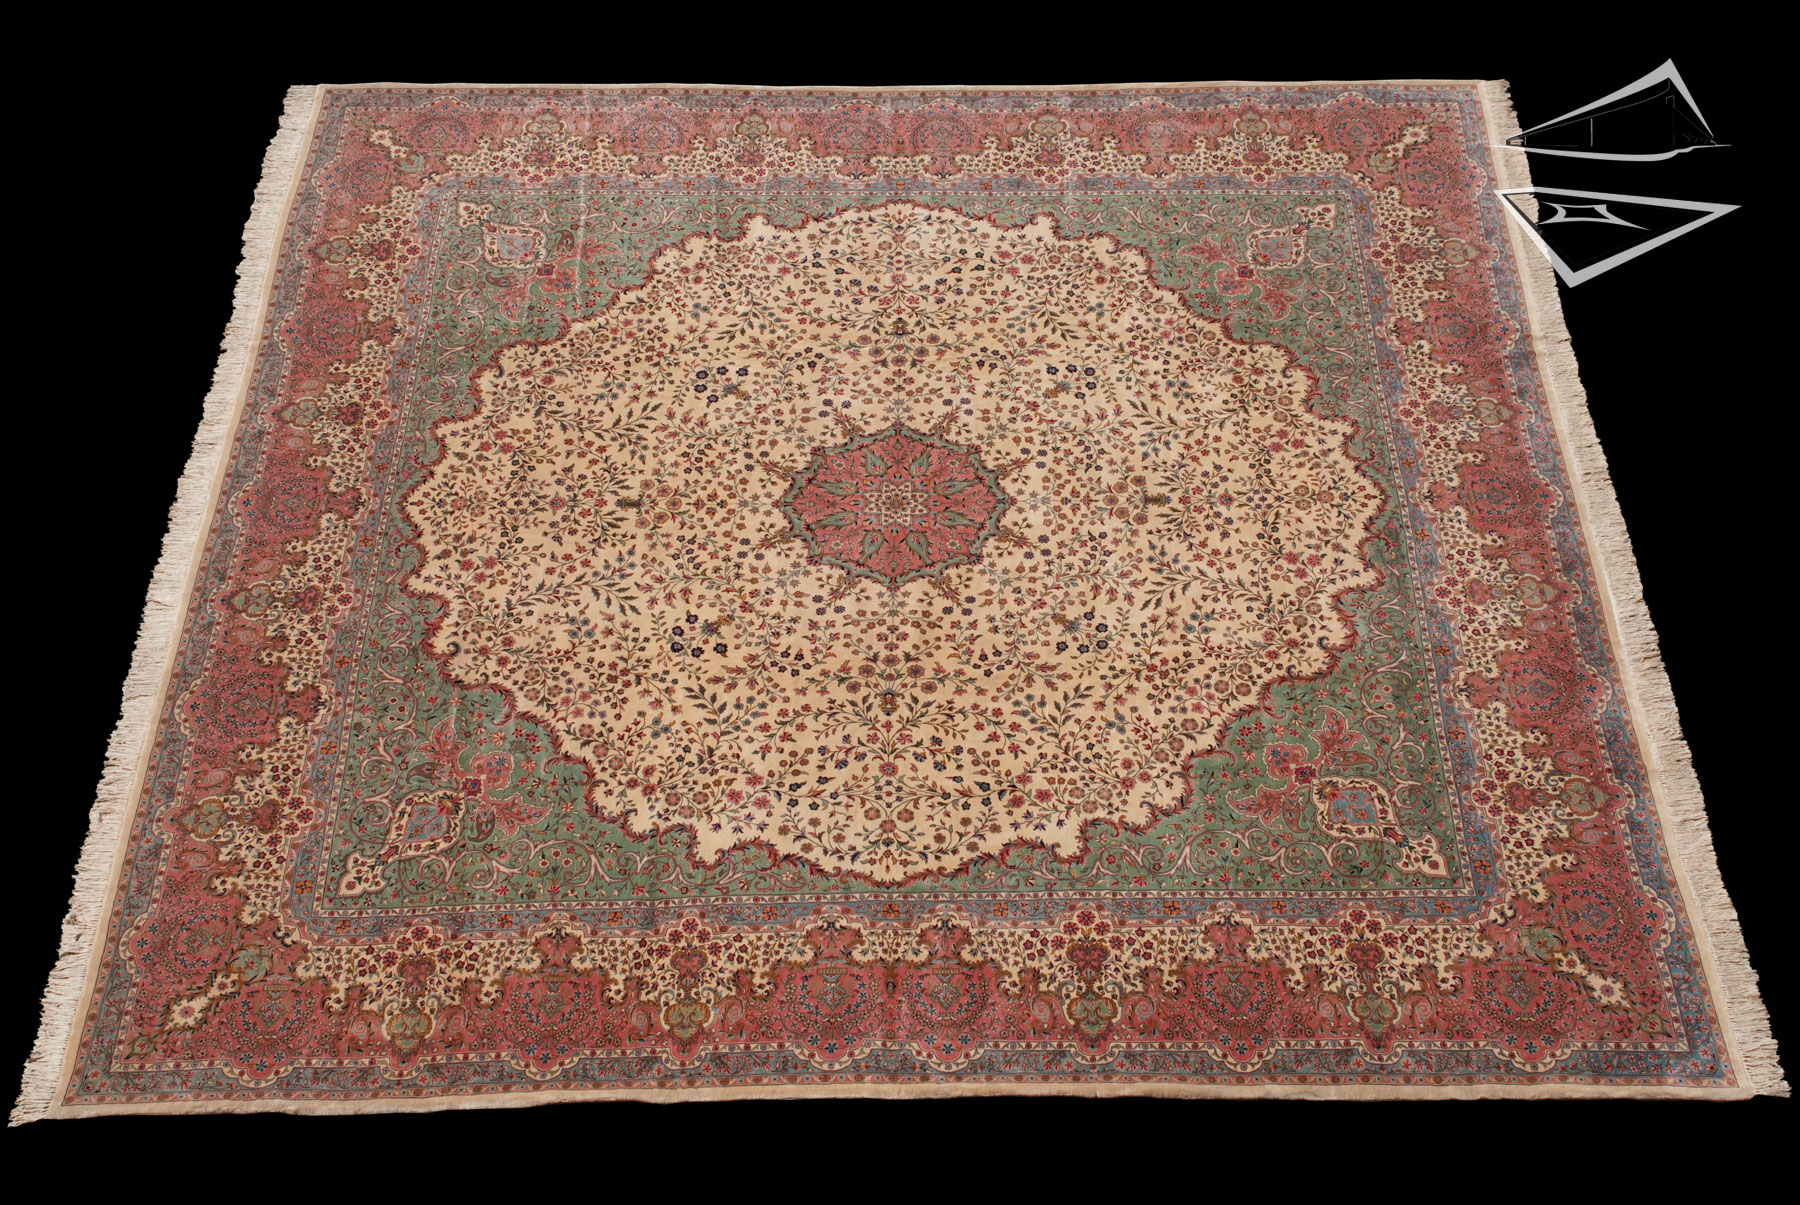 17x19 Bulgarian Oversize Square Rug Large Rugs Amp Carpets